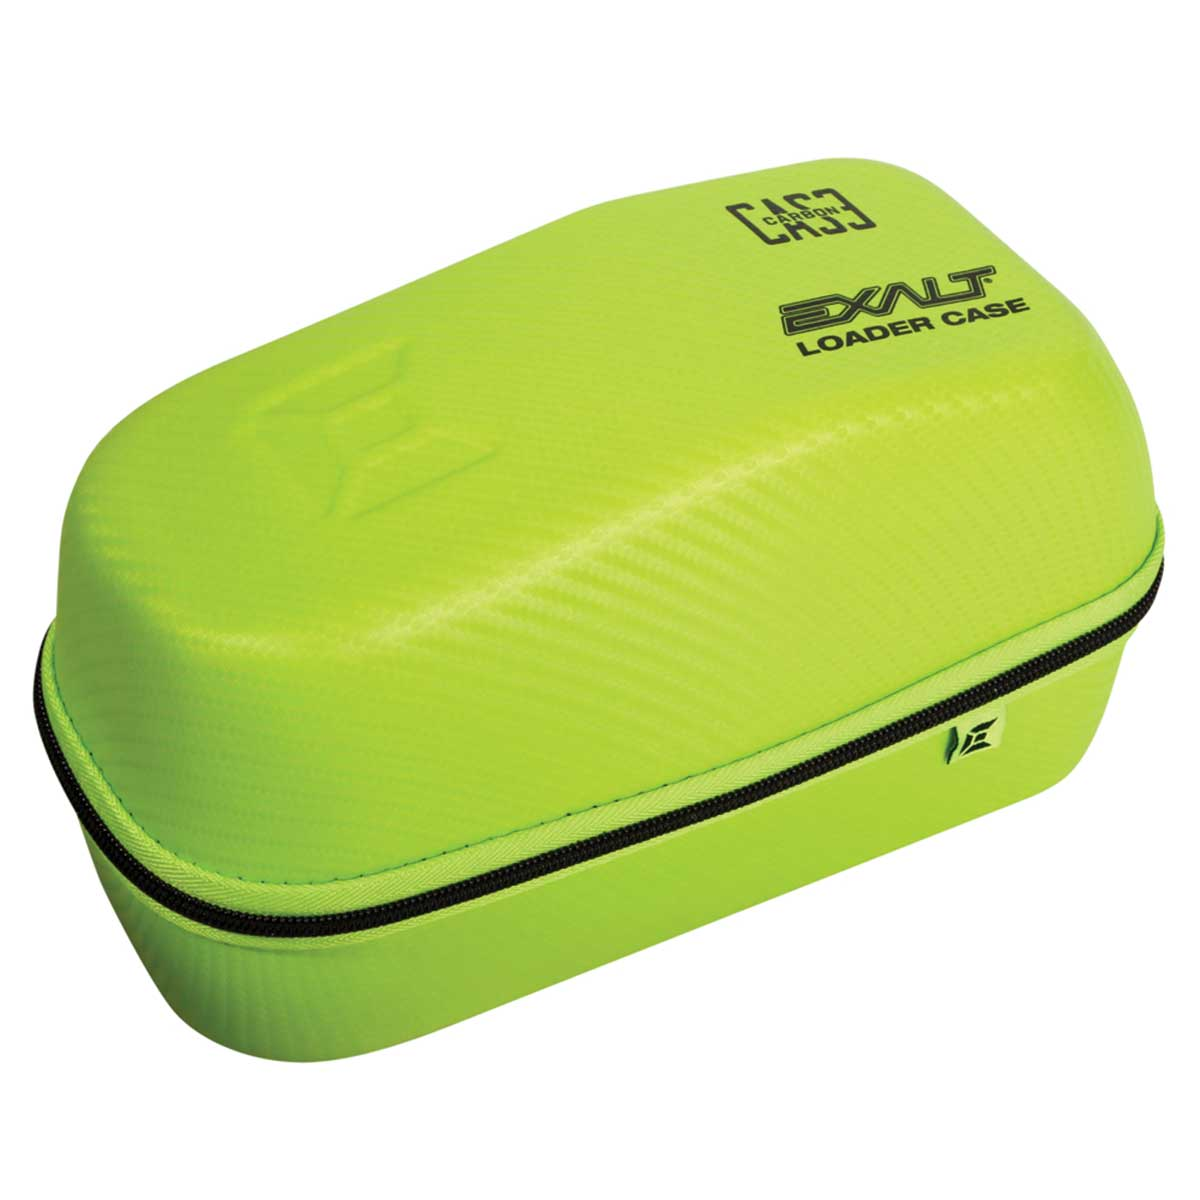 Exalt Paintball Carbon Series Loader Case - Lime